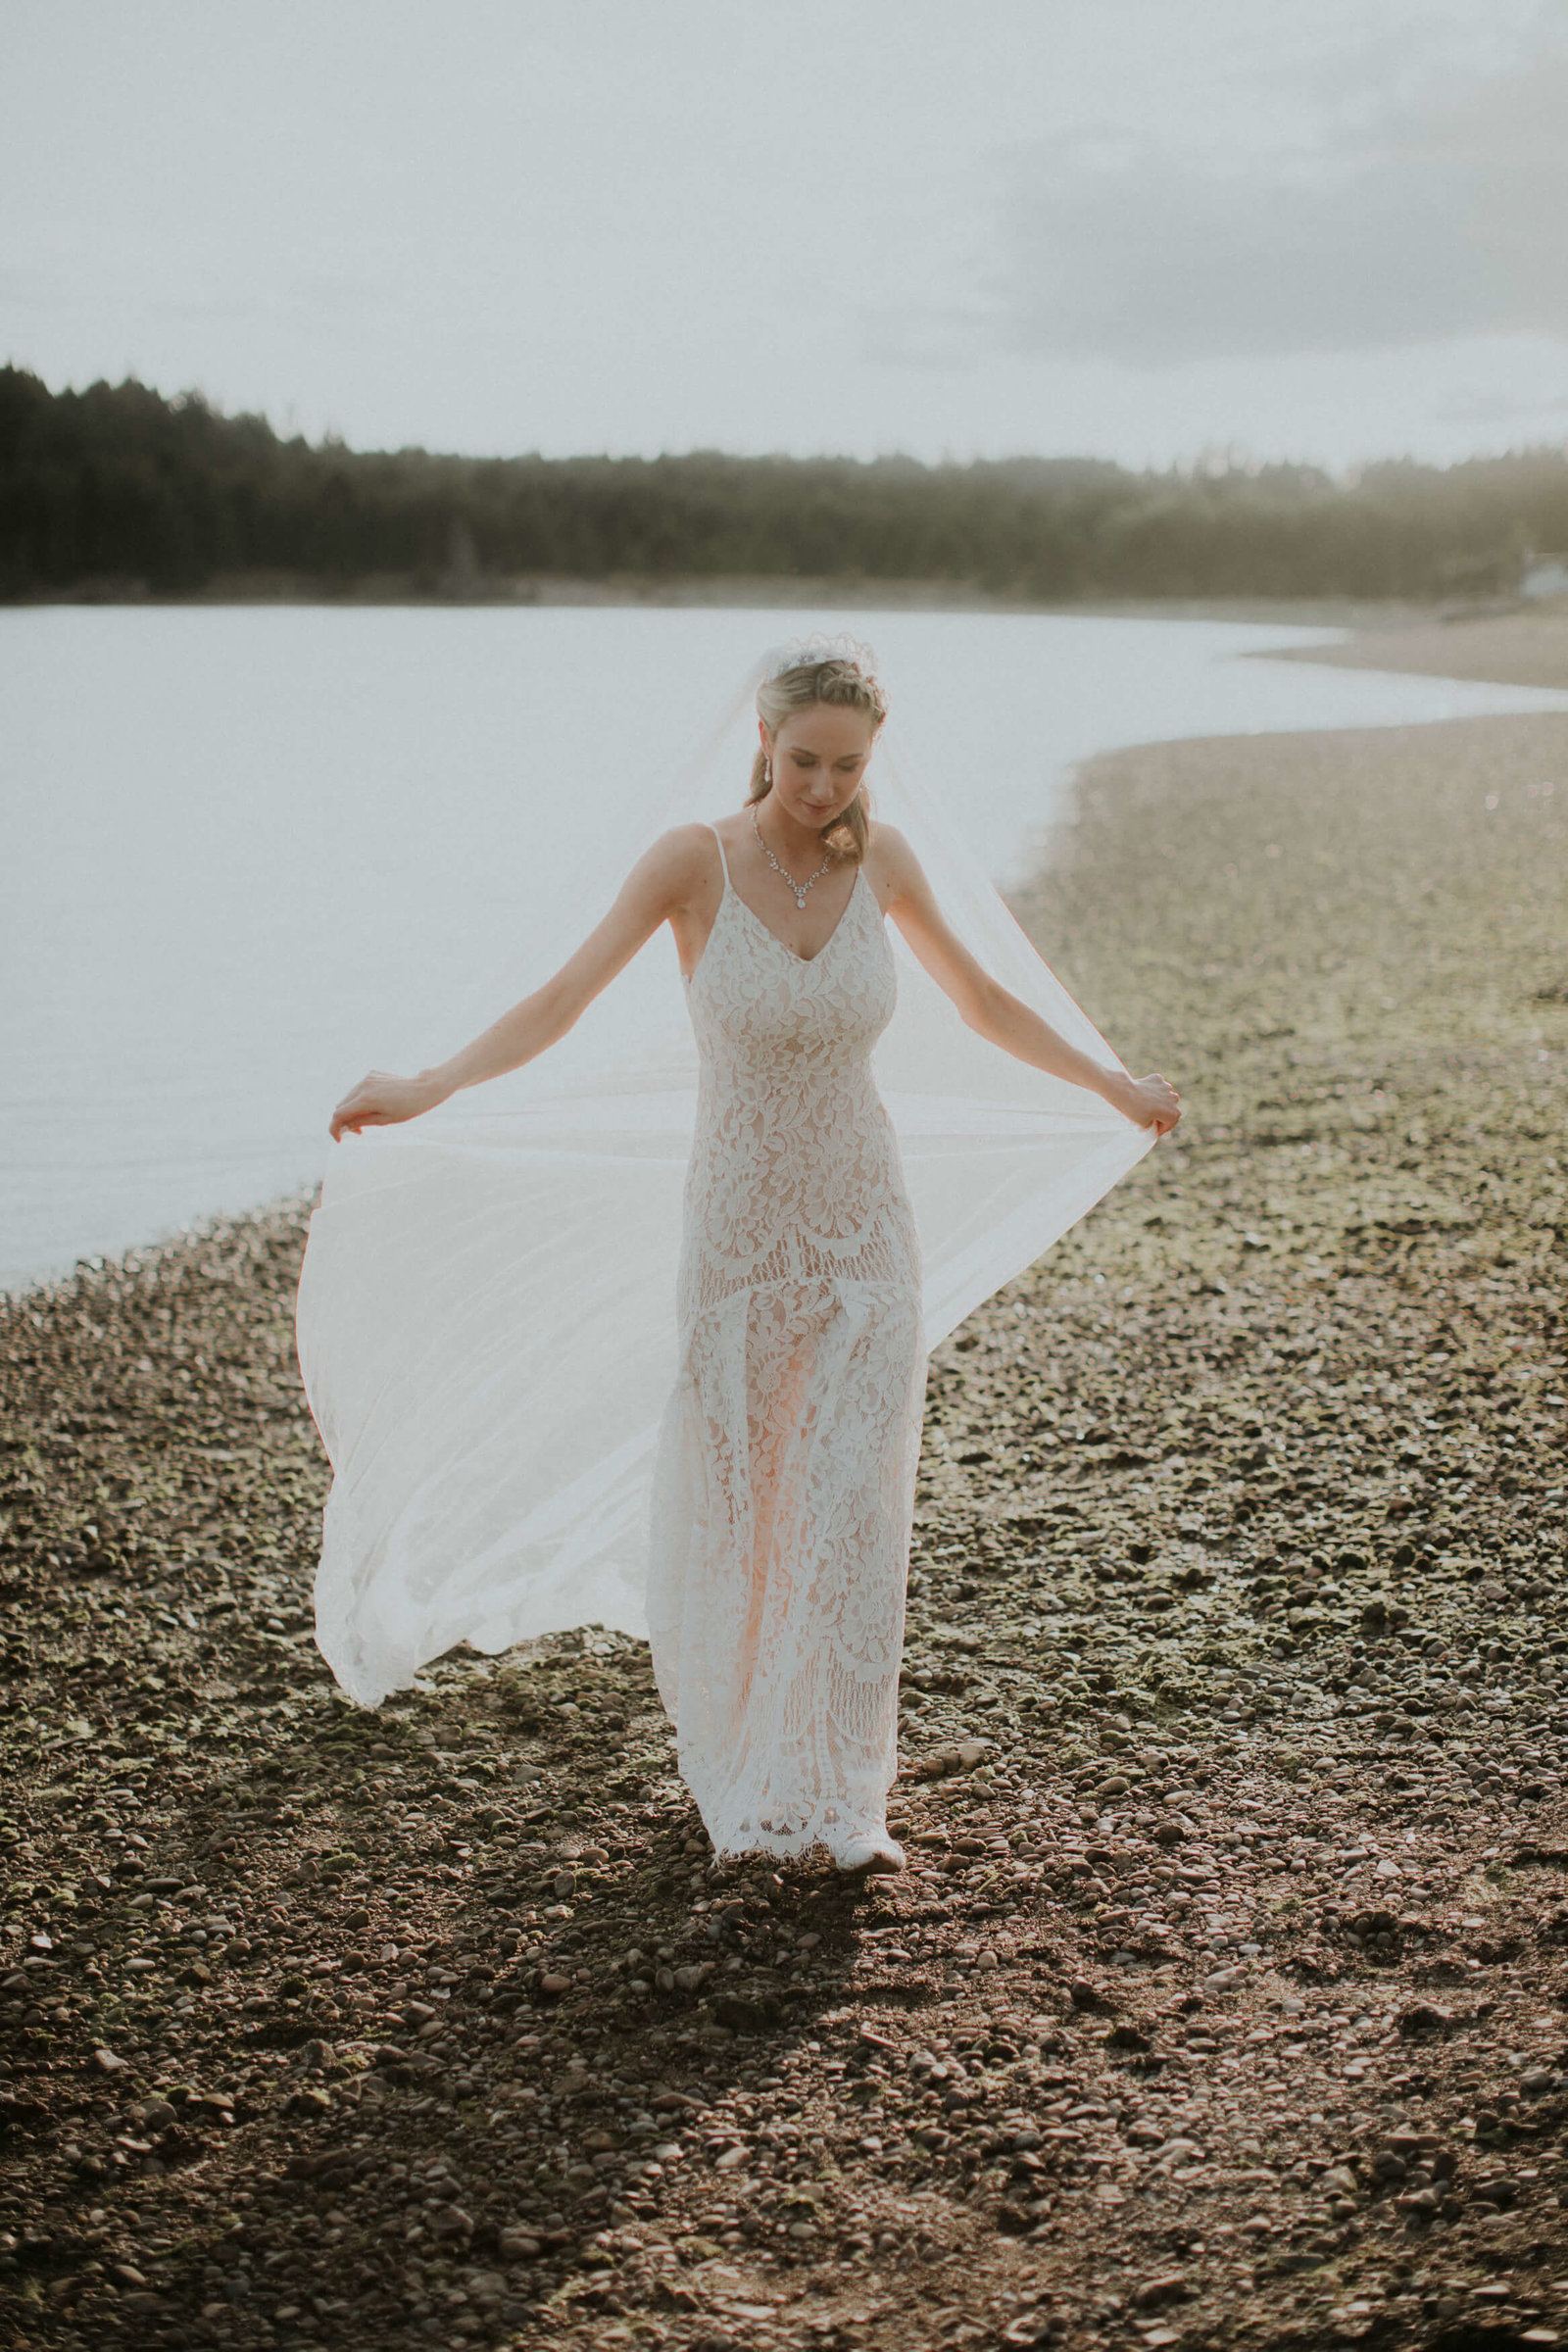 anderson-island-wedding-Seattle-by-Adina-Preston-Photography-2019-184